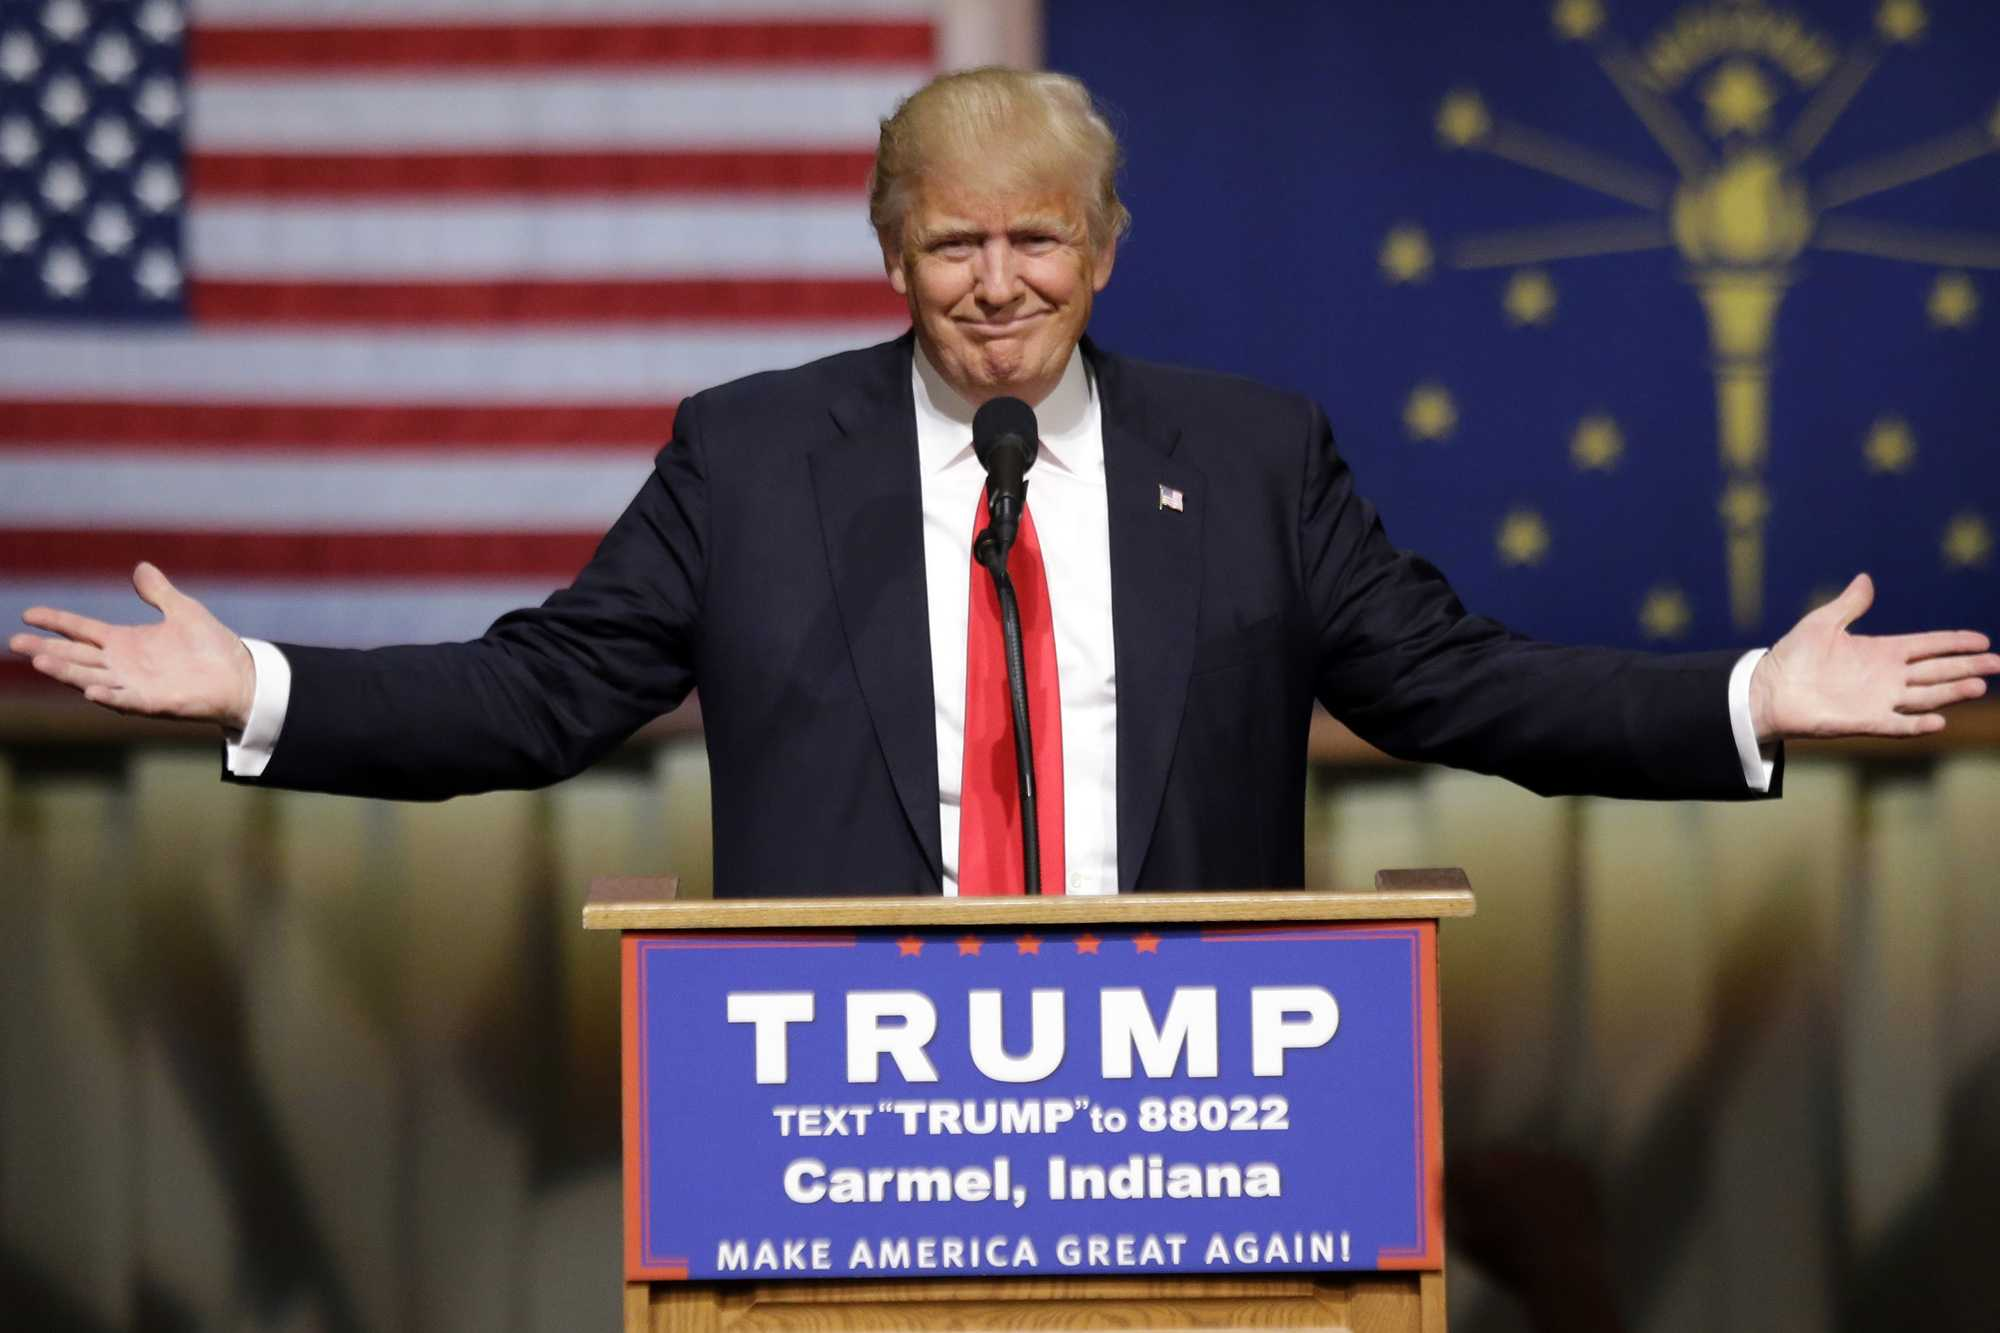 Donald Trump at a podium with spread hands.